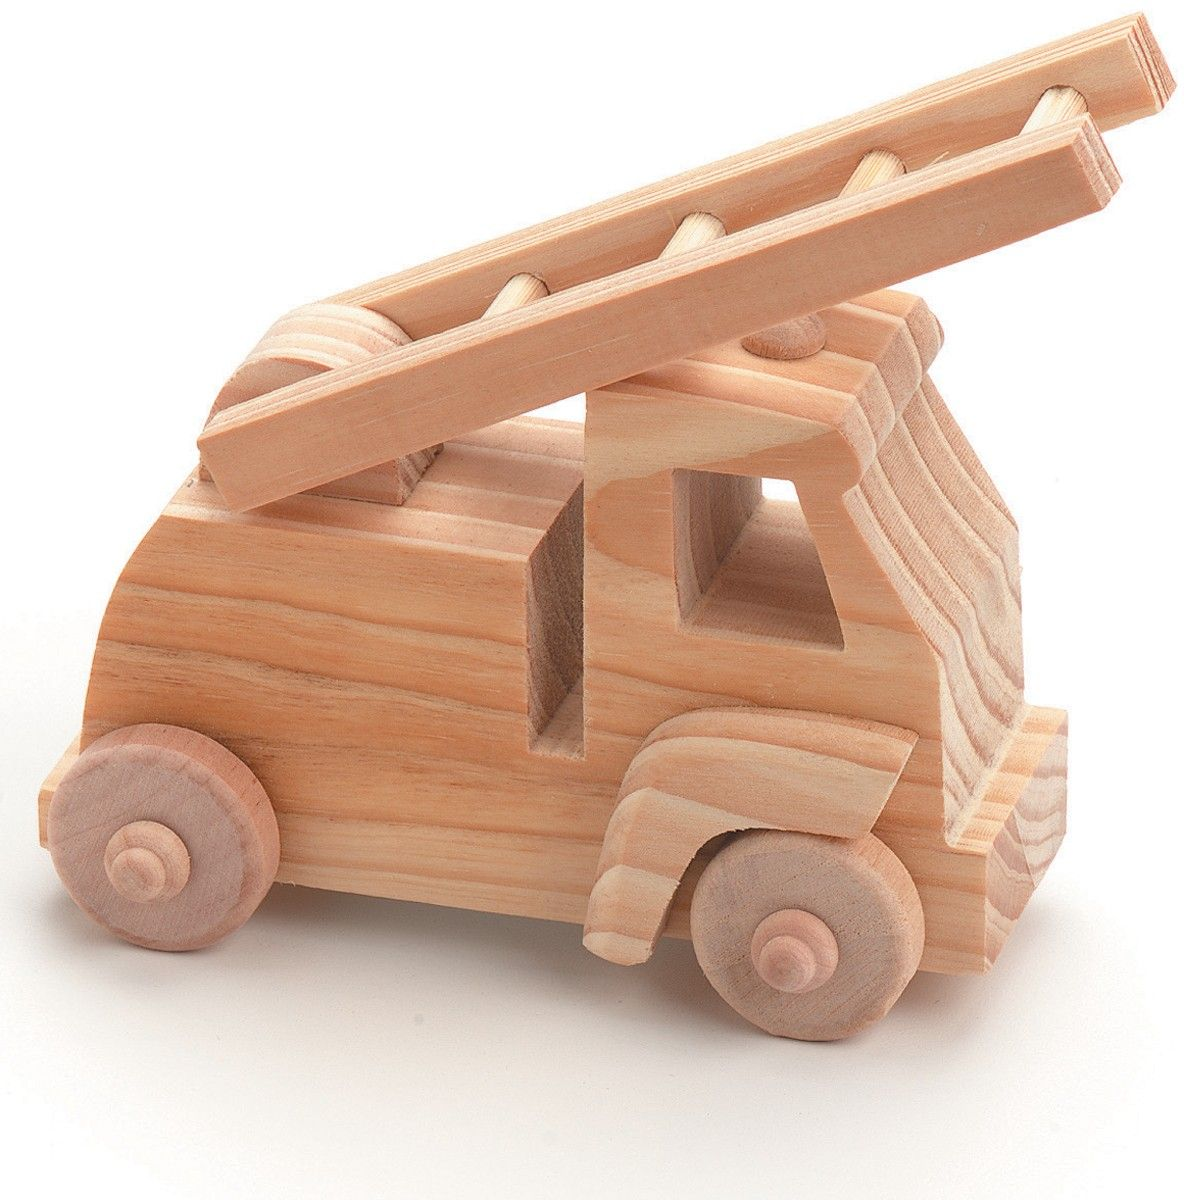 Fire Truck Wood Toy Kit